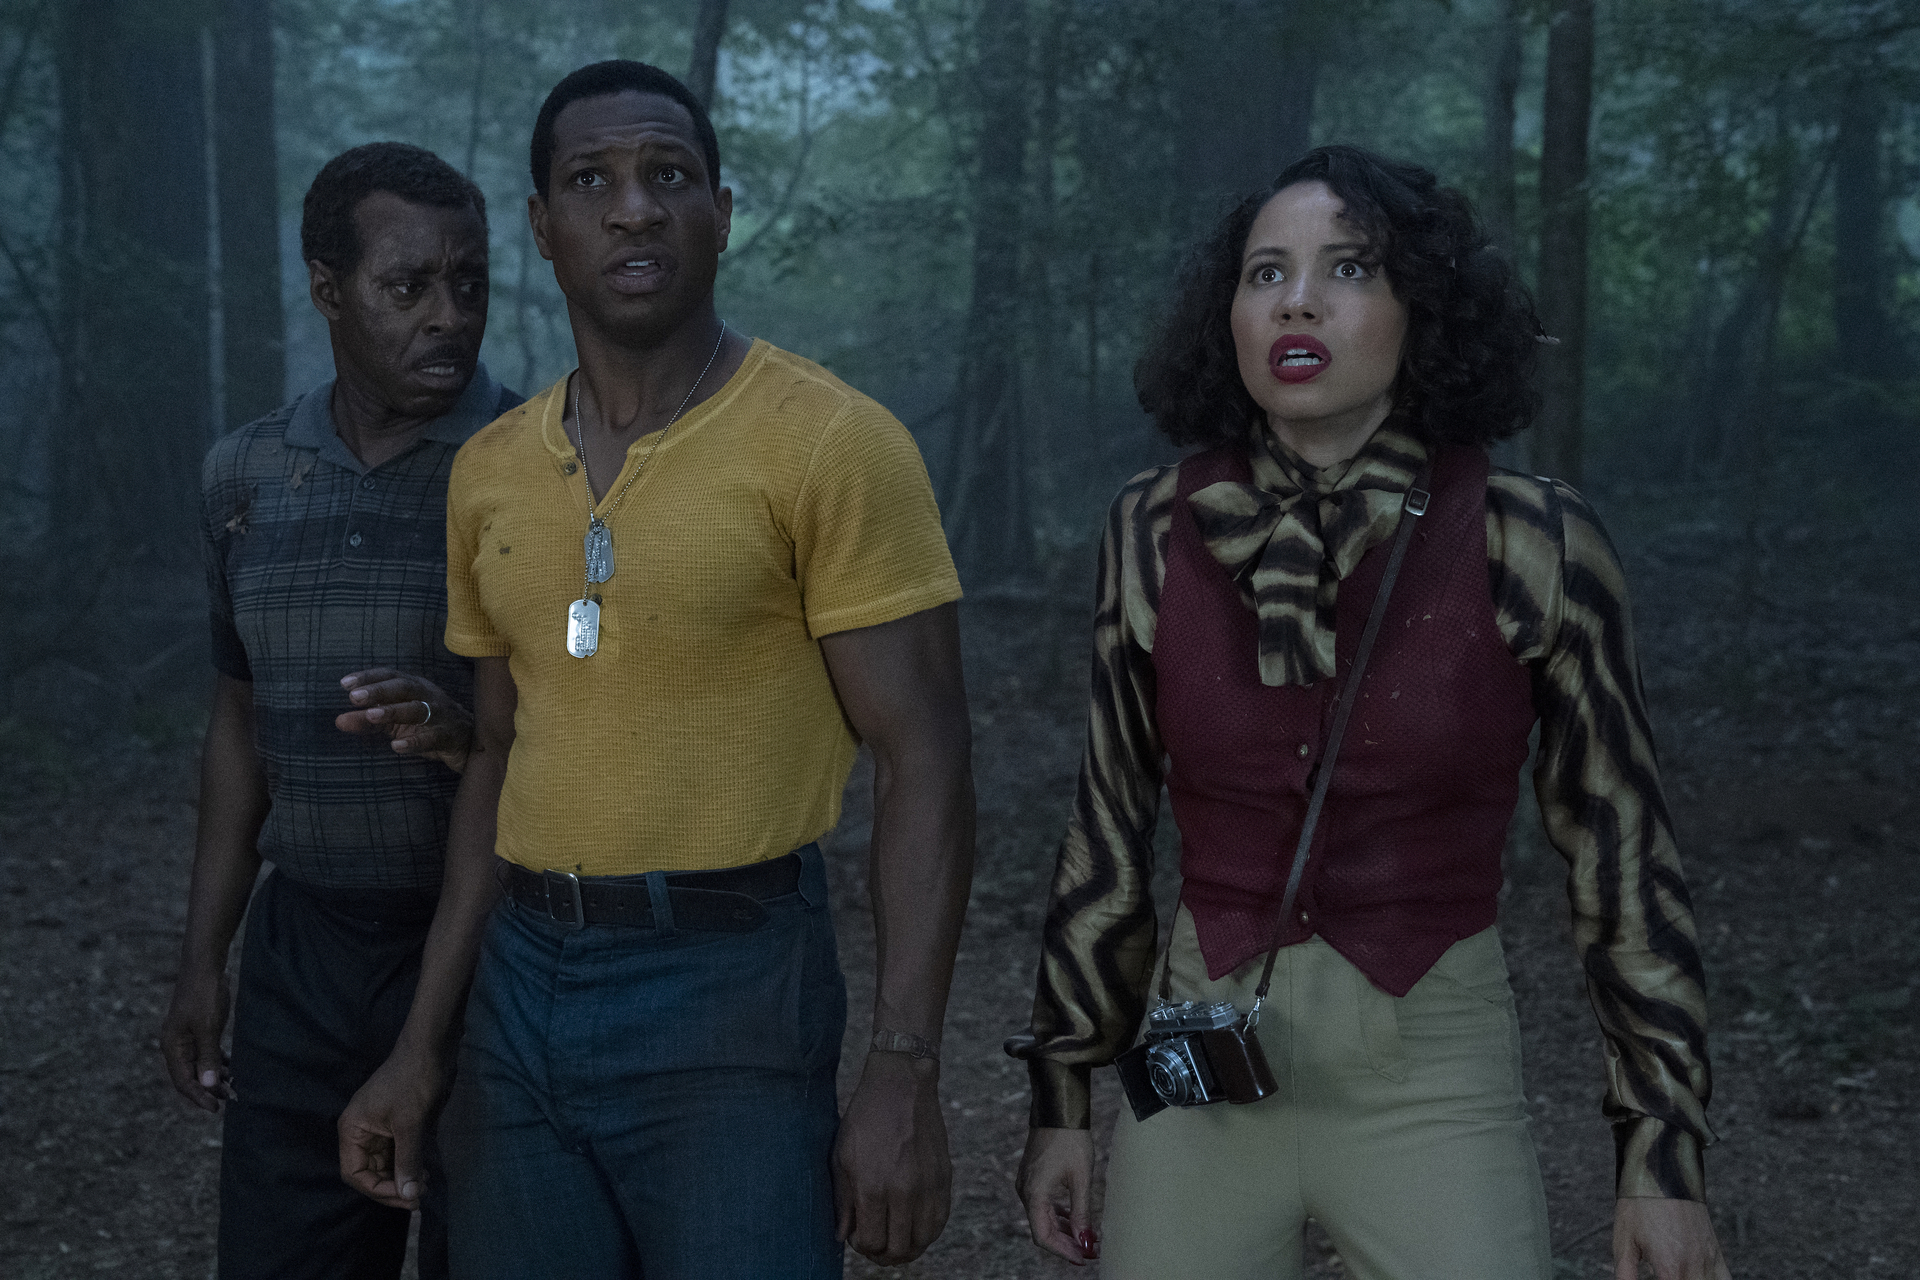 Lovecraft Country's Courtney B. Vance, Jonathan Majors, and Jurnee Smollett stand in a forest at night, looking with concern at something offscreen.